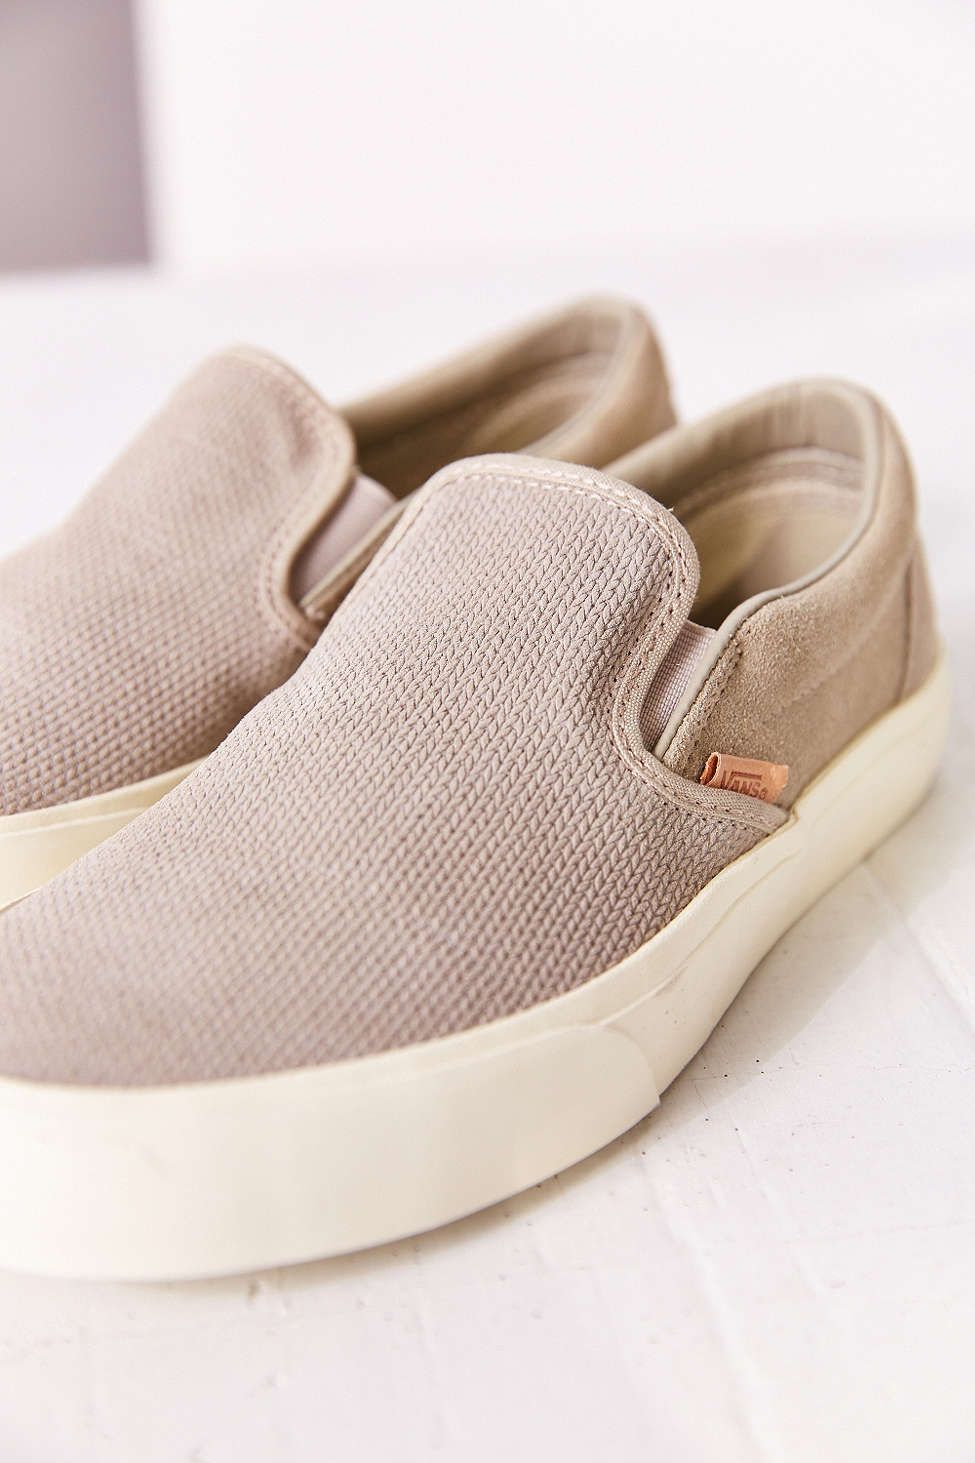 08707d3a99 ... shoes  Vans Classic Knit Suede Slip-On Womens Sneaker - Urban Outfitters